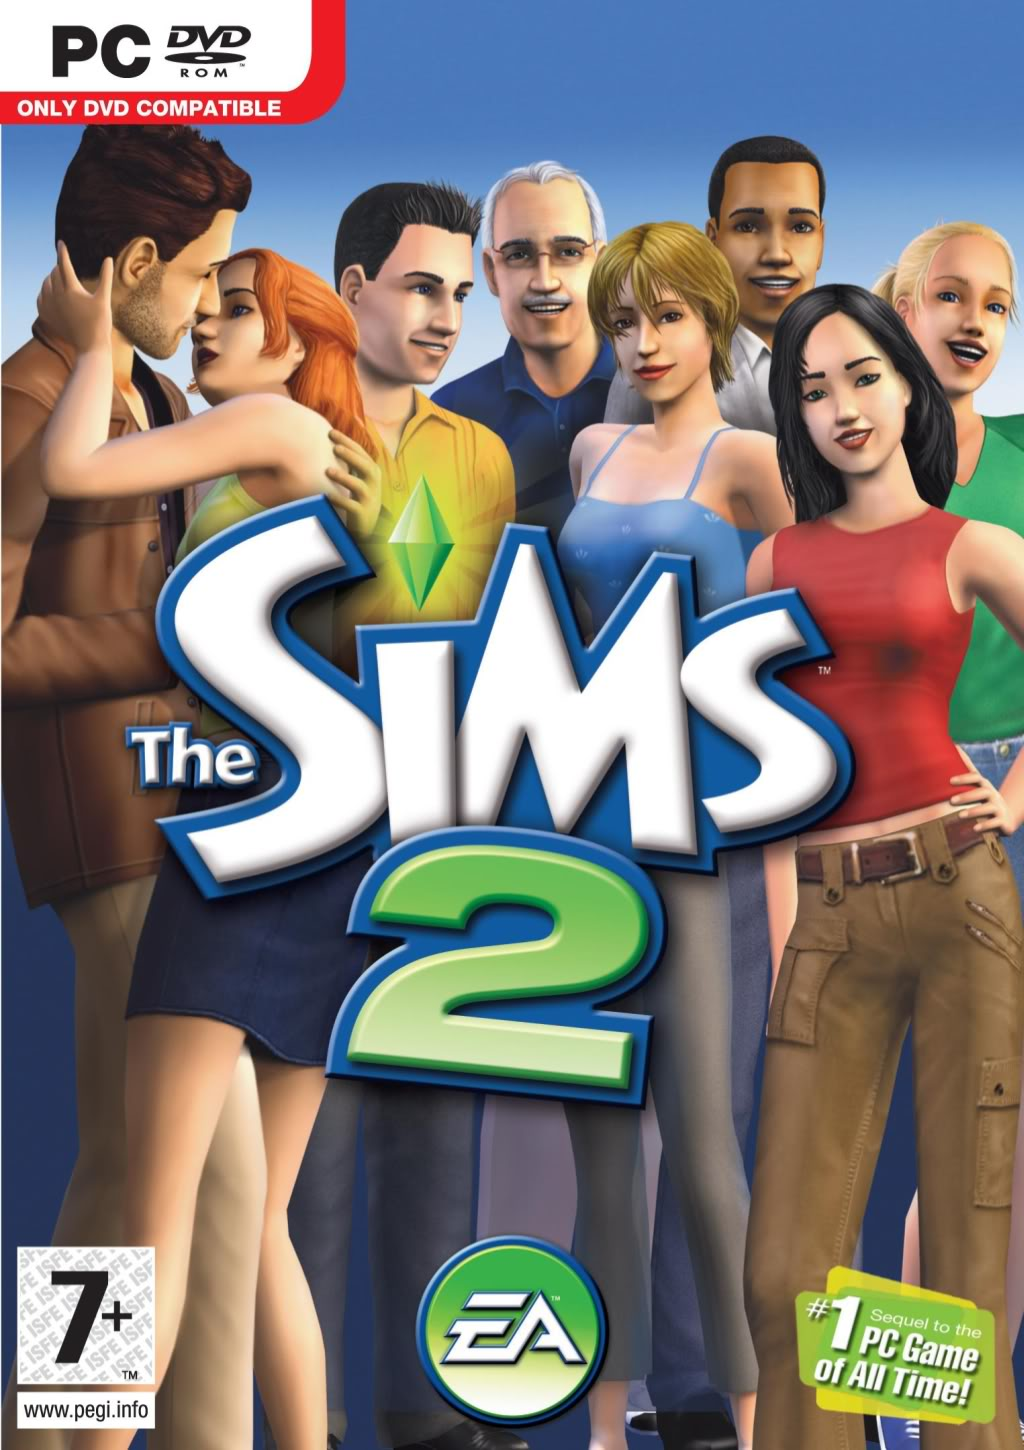 Free download of the sims 2 full game mark twain casino in missouri